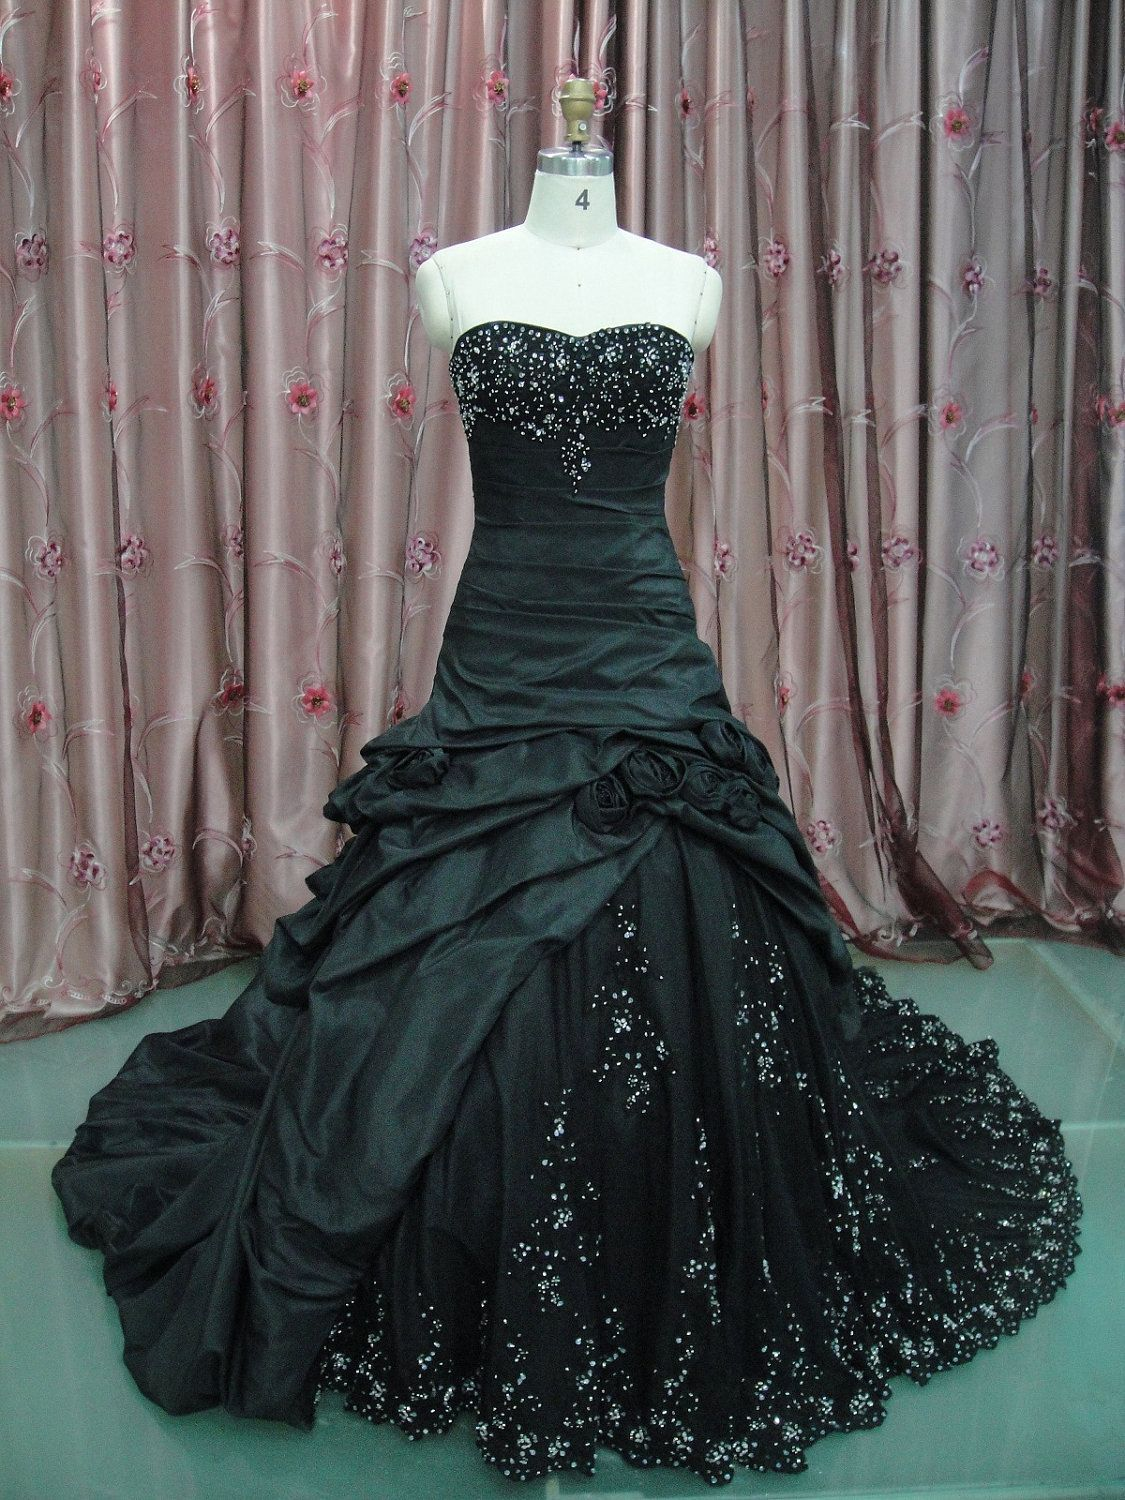 Red and black wedding dress  Custom Made Maggie Sottero Inspired Black Wedding Gown Dress  Red